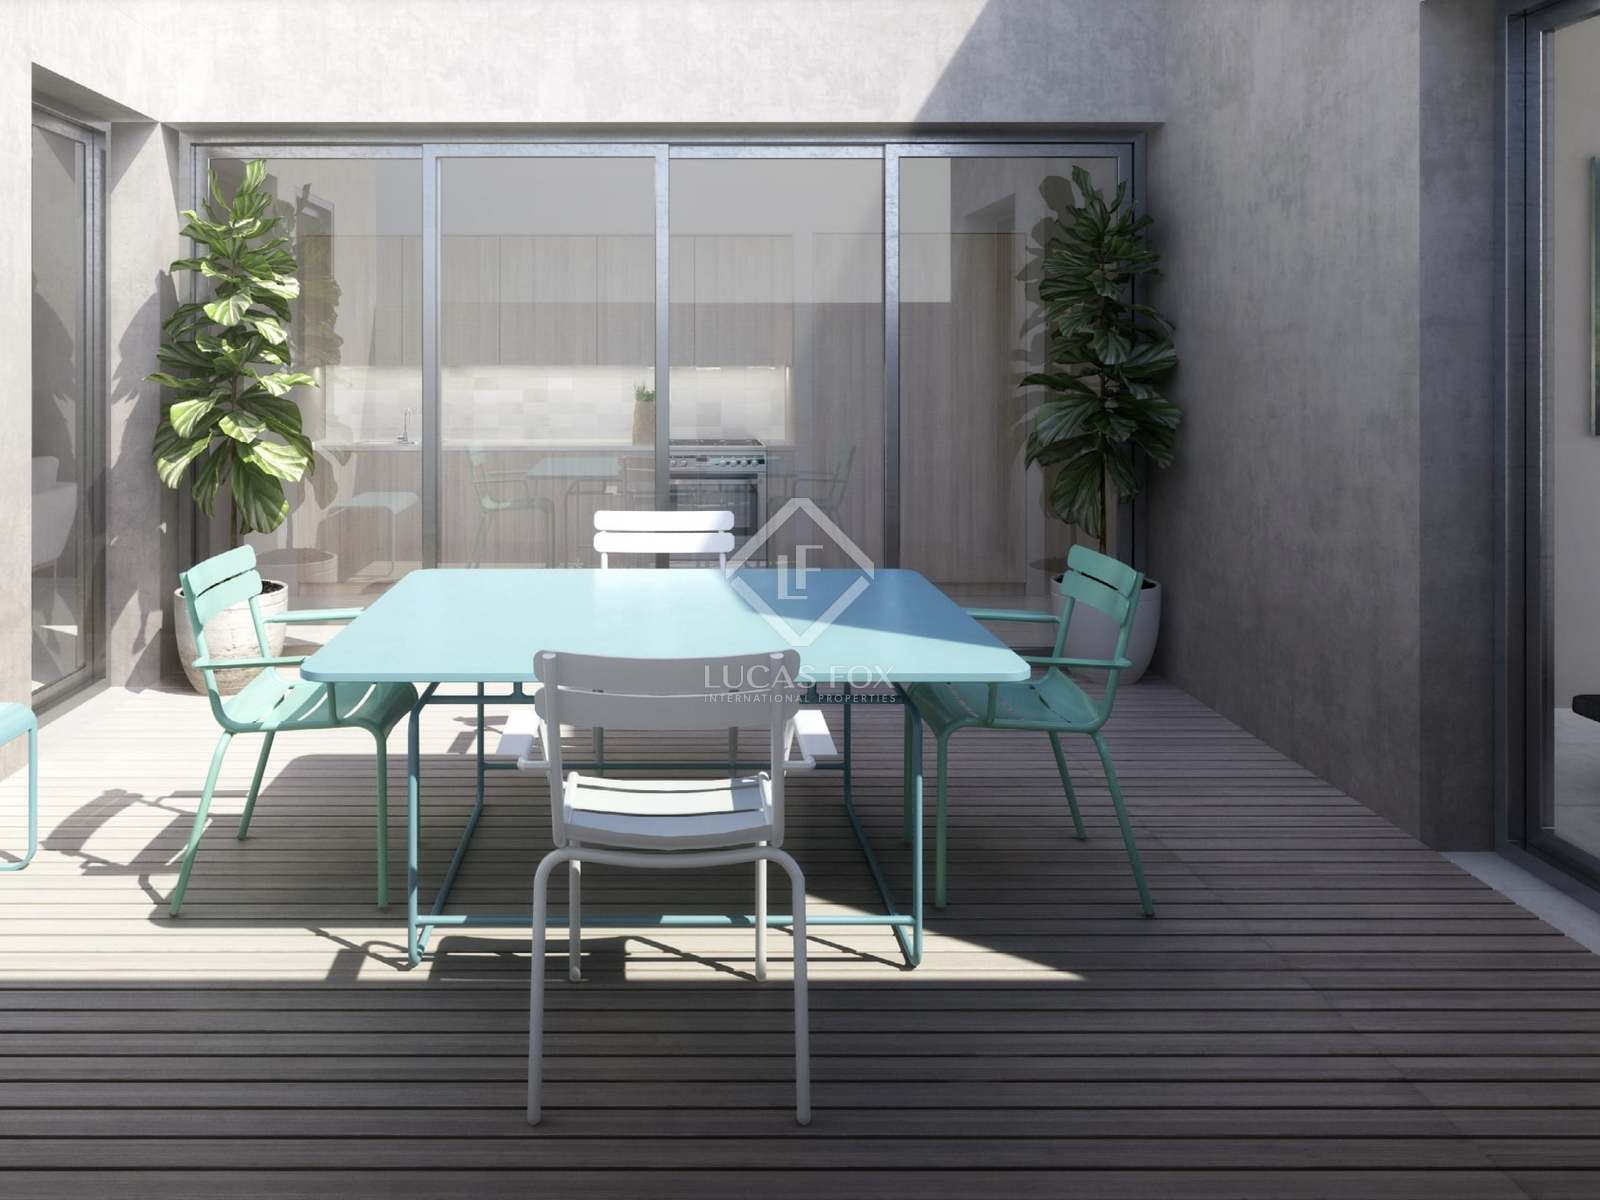 Patio : Some unit images shown are computer generated or indicative only